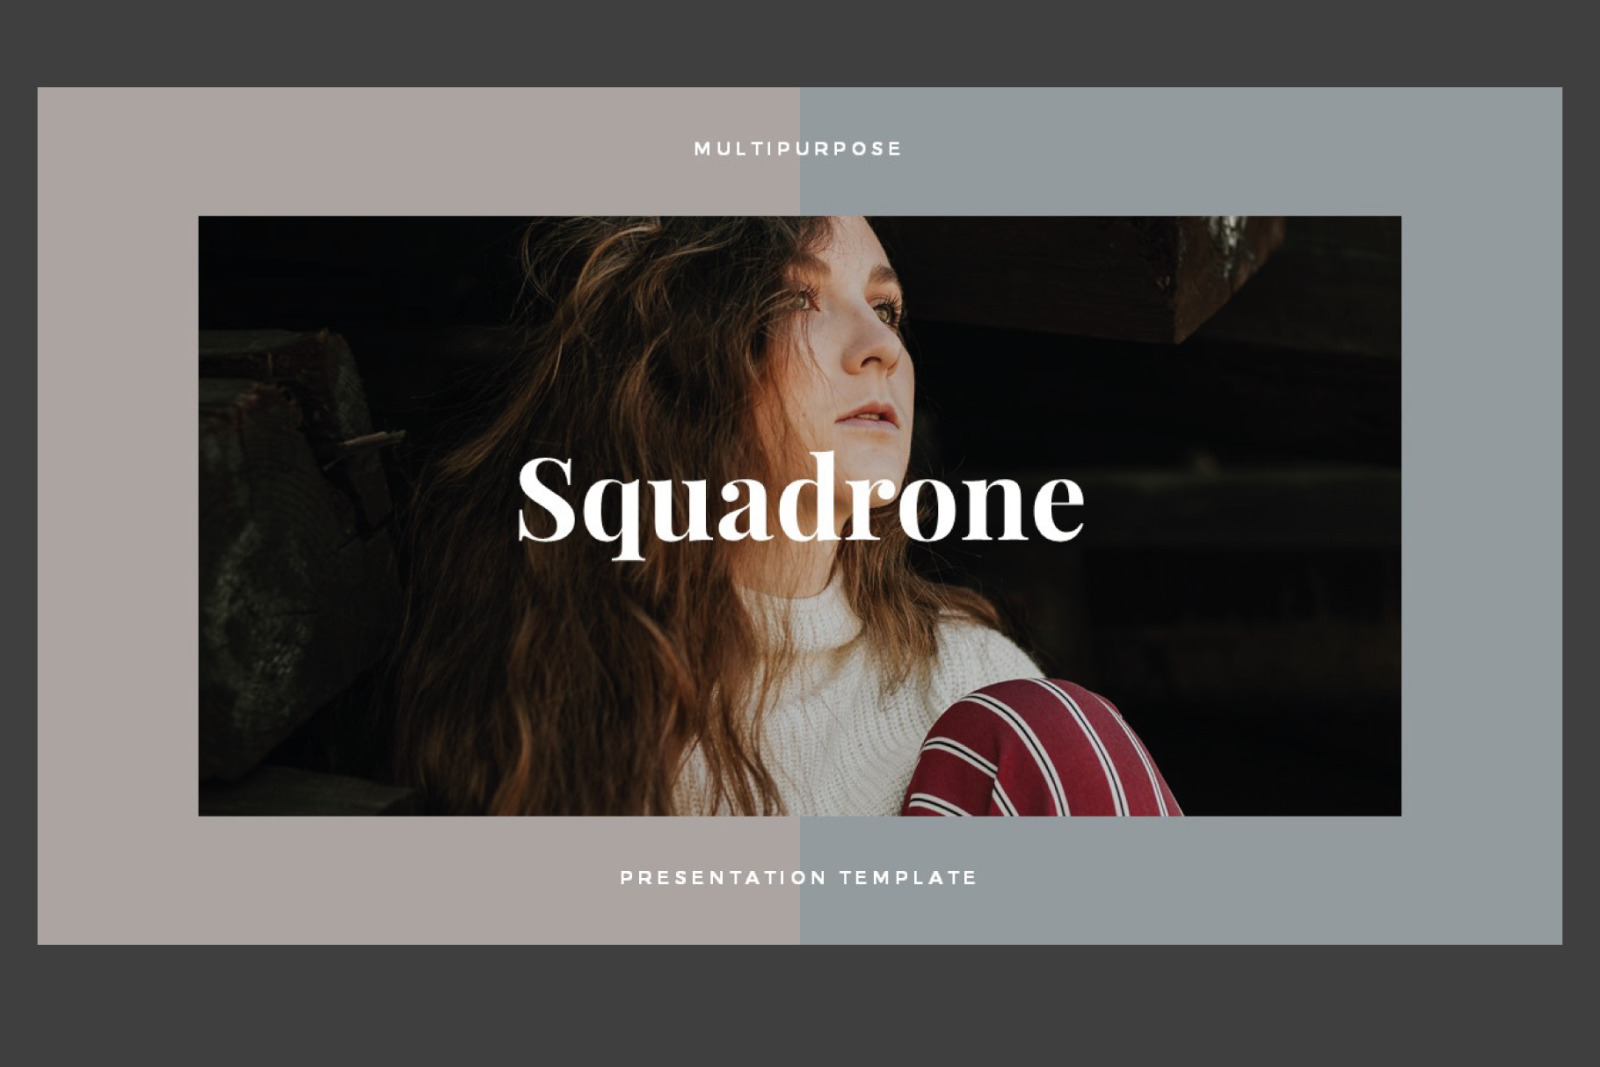 Squadrone - PowerPoint Template